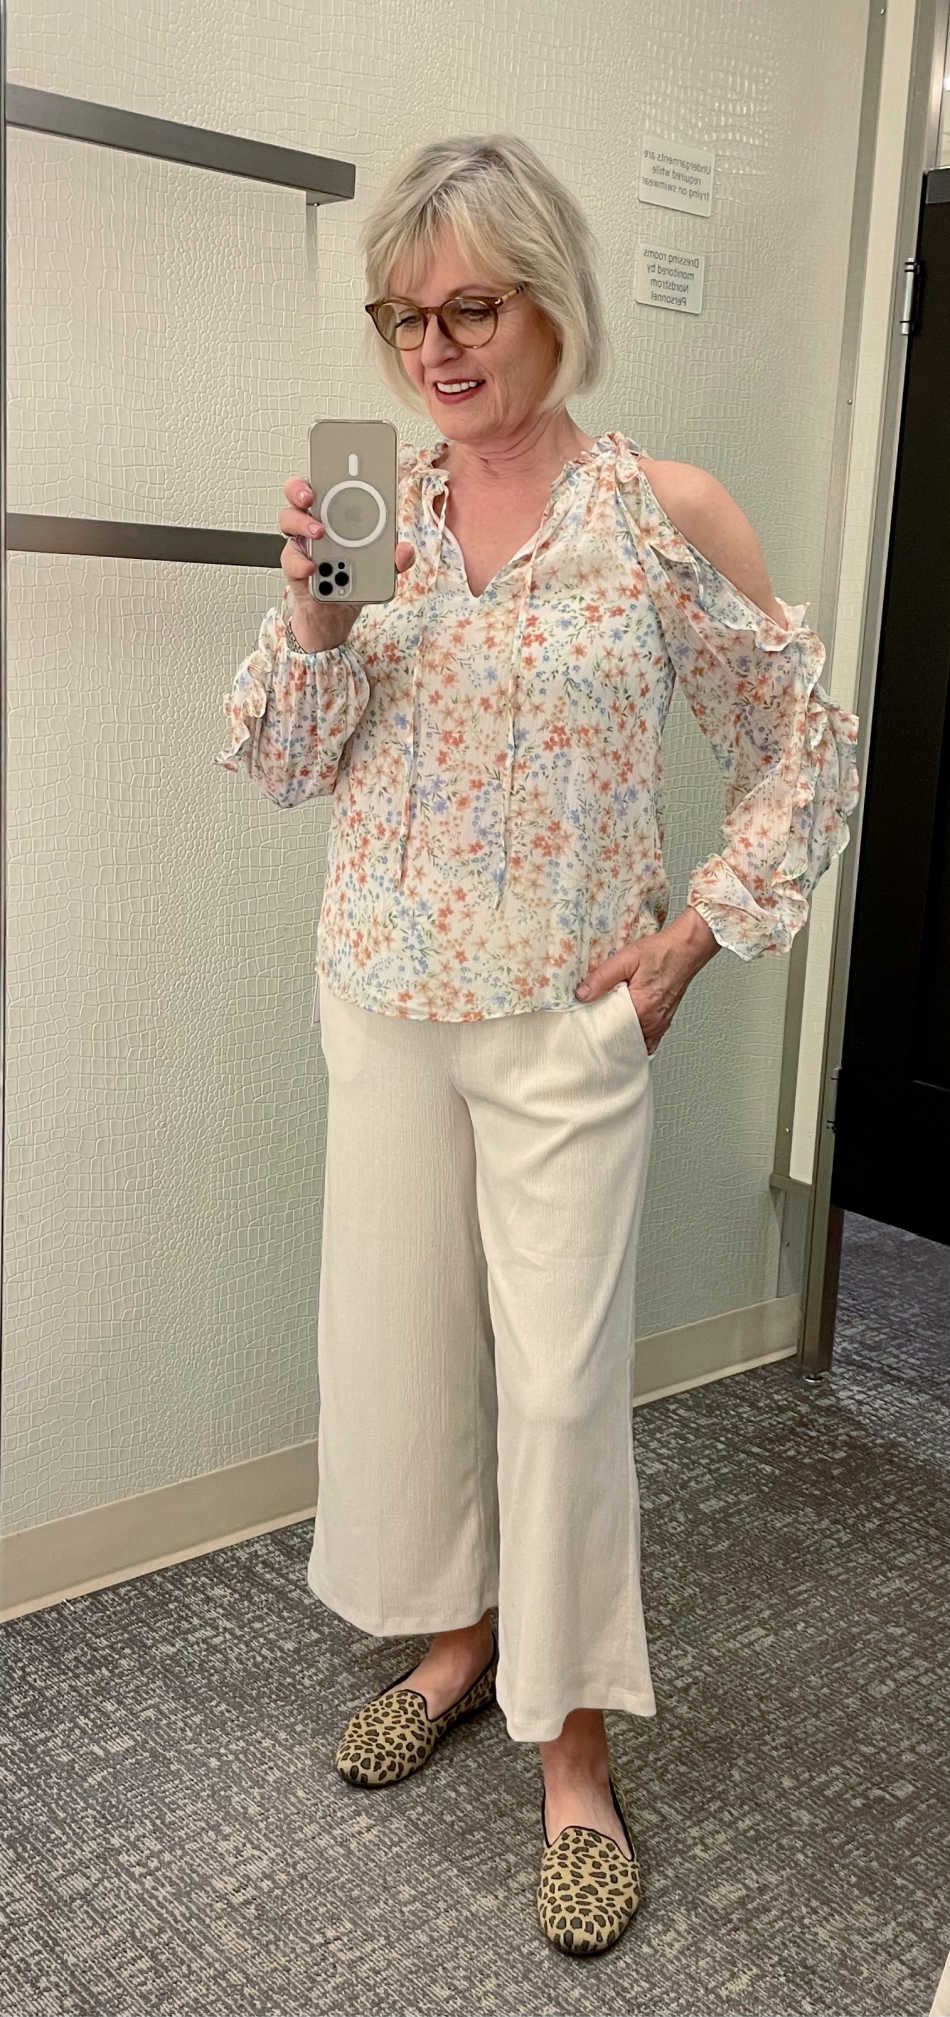 woman trying on crop pants and ruffle sleeve blouse in dressing room